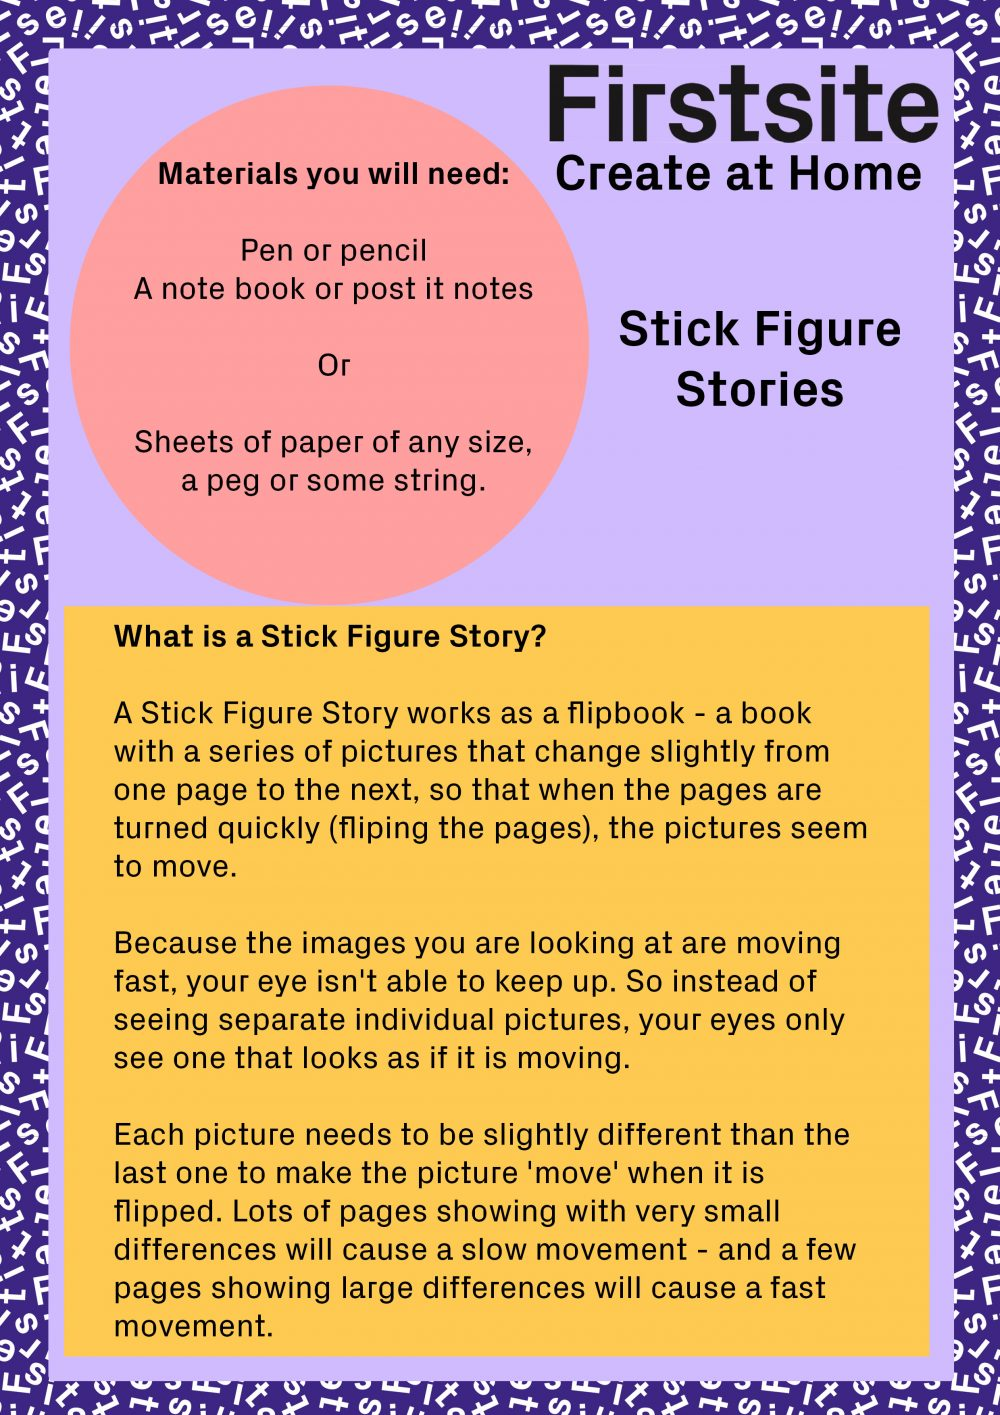 Written instructions for how to make a stick figure story page 1 of 3